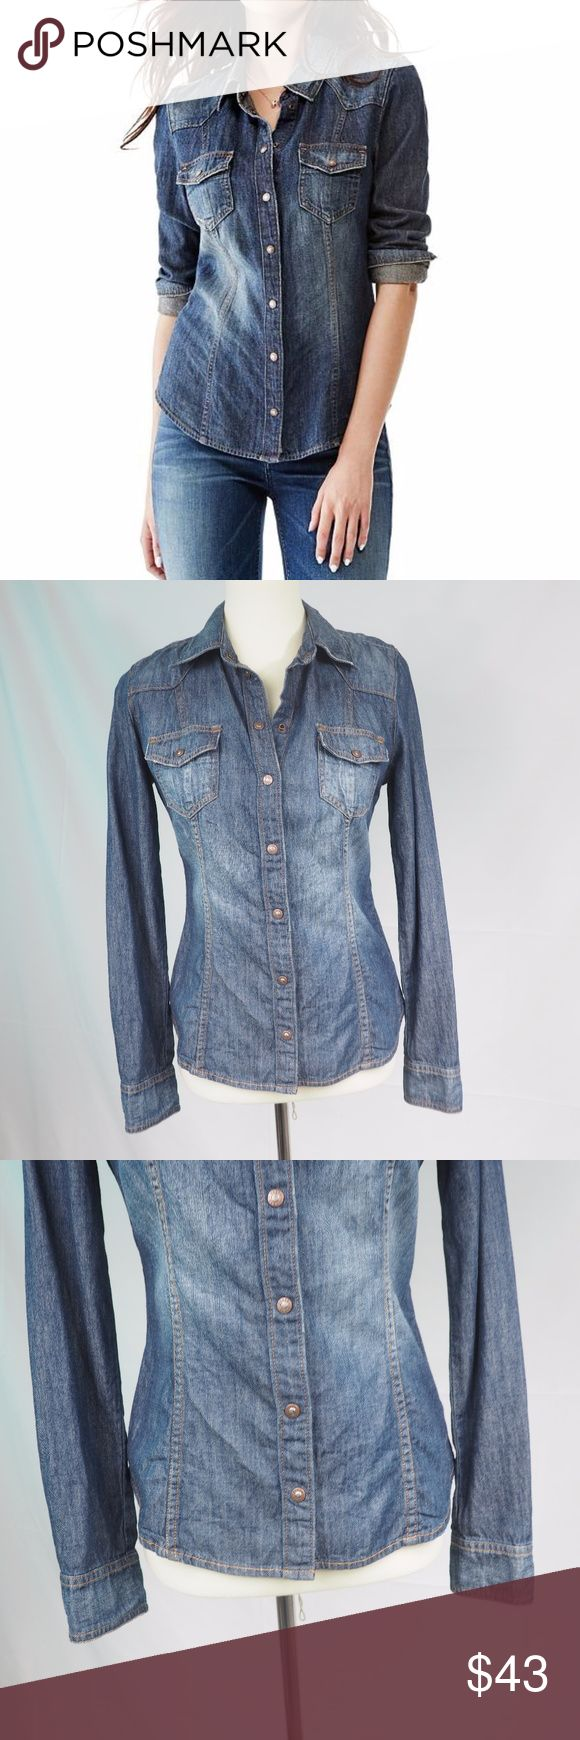 """Guess Snap Up Denim Shirt Size Small Hello! Up for sale is this GUESS Snap Up Denim Blouse in size small in good pre-loved condition. Please view all photos and measurements to ensure your perfect fit before purchase. Please let me know if you have any questions! :)   Measurements Shoulder-Shoulder- Nearly 15"""" Top-Bottom - 24.5"""" Underarm-Underarm - 17.5"""" Sleeve - 25.5"""" Guess Tops Button Down Shirts"""